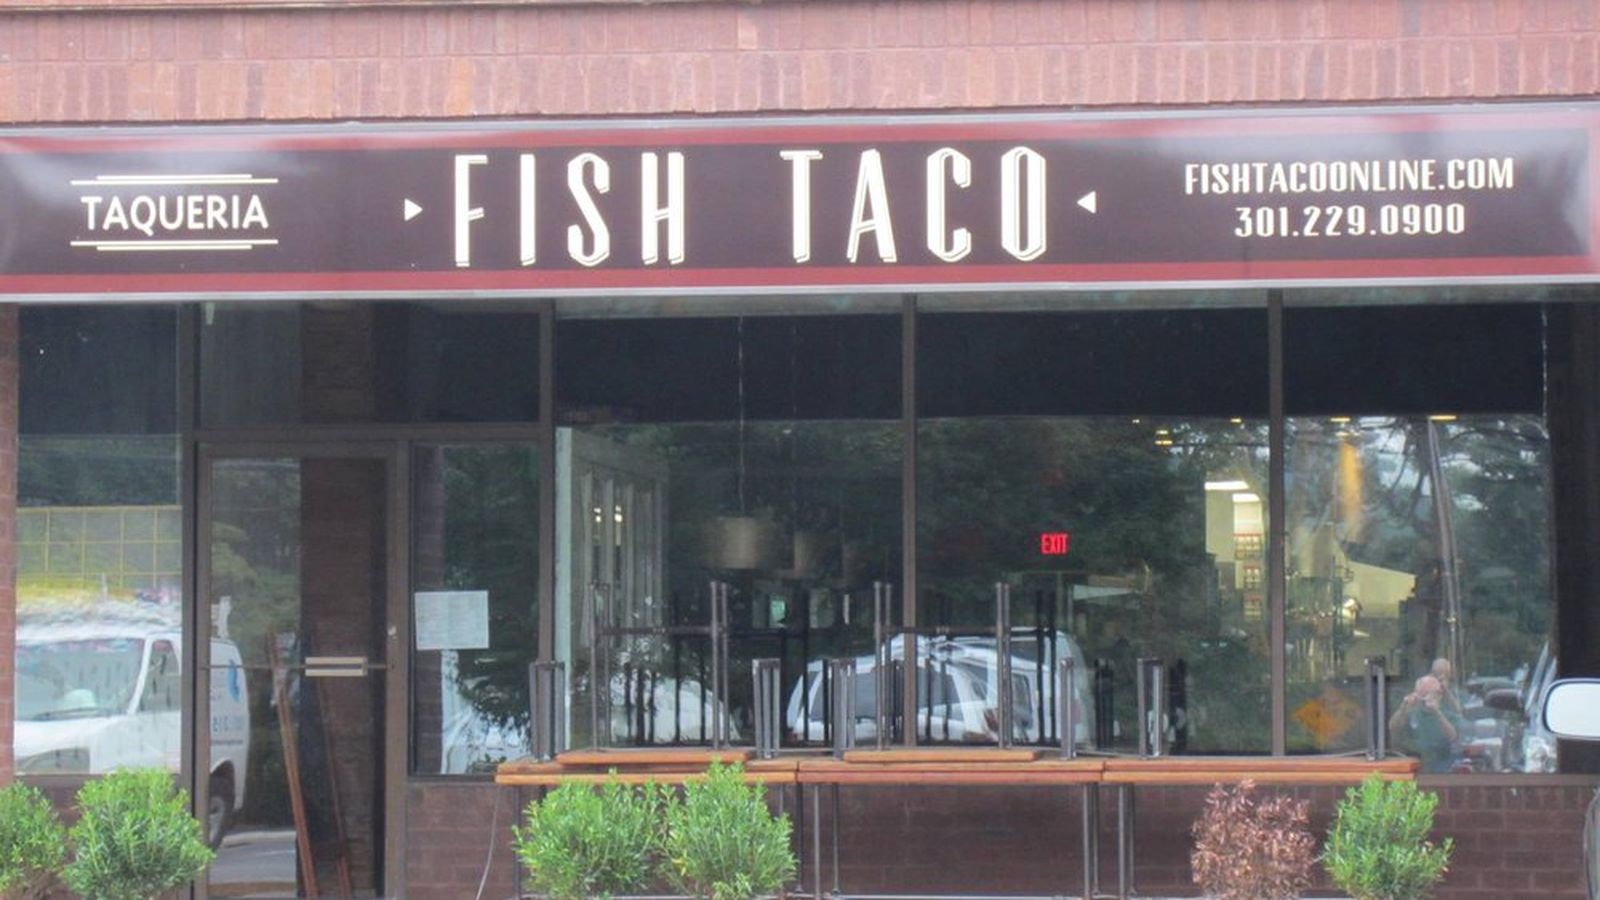 Fish taco now open in bethesda eater dc for Fish taco bethesda md